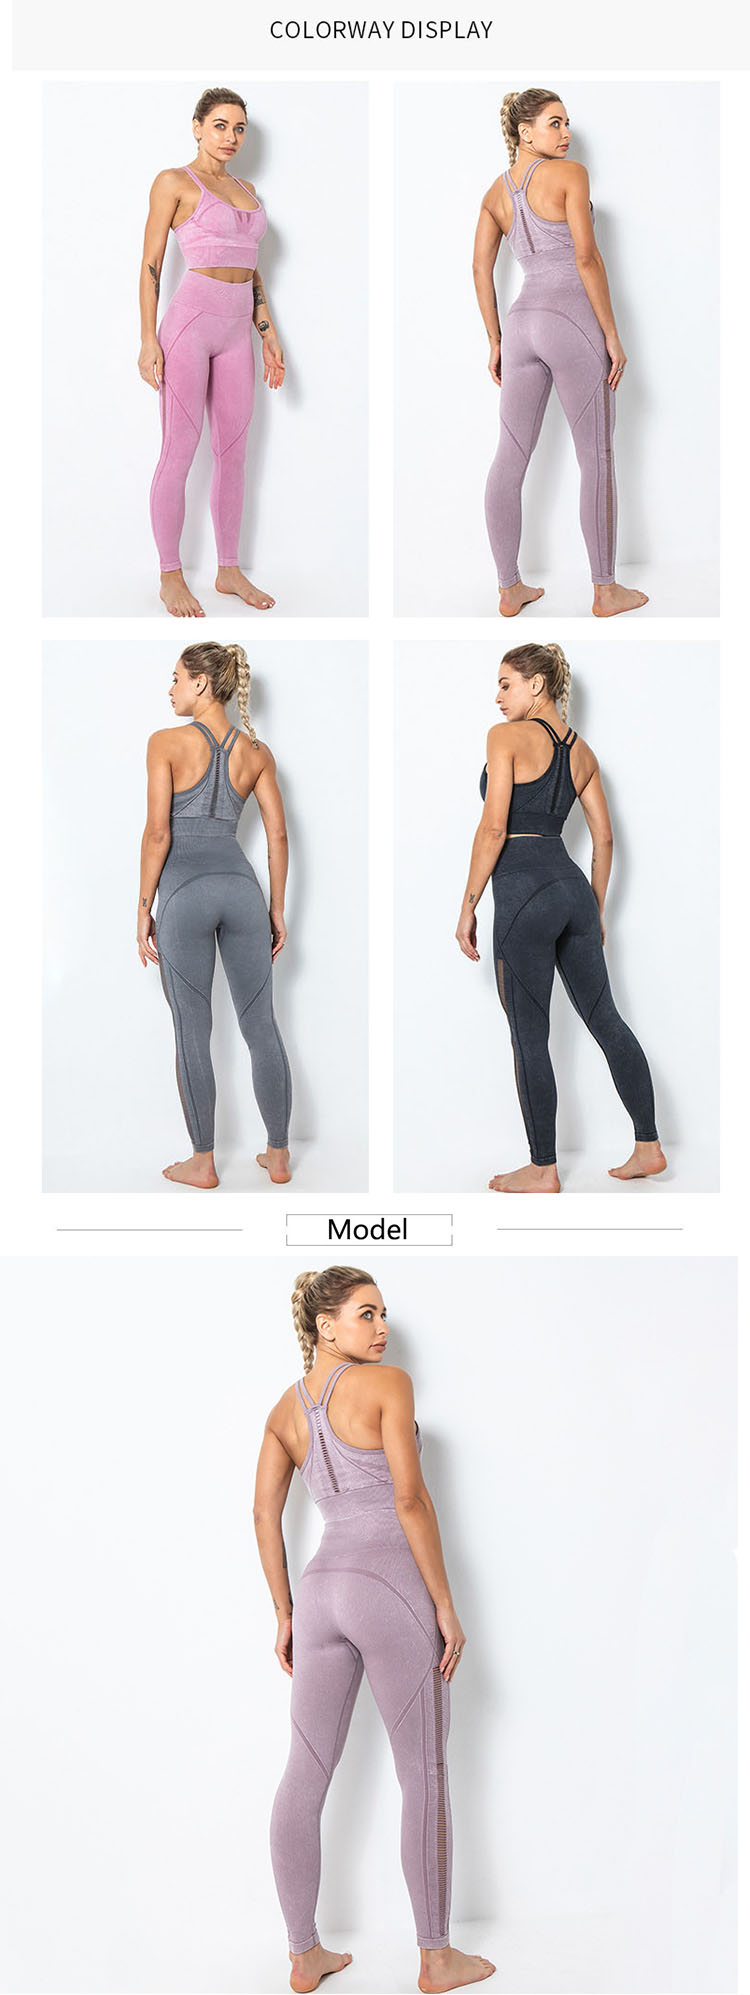 Leggings without front rise seam best reflects the technological advantage